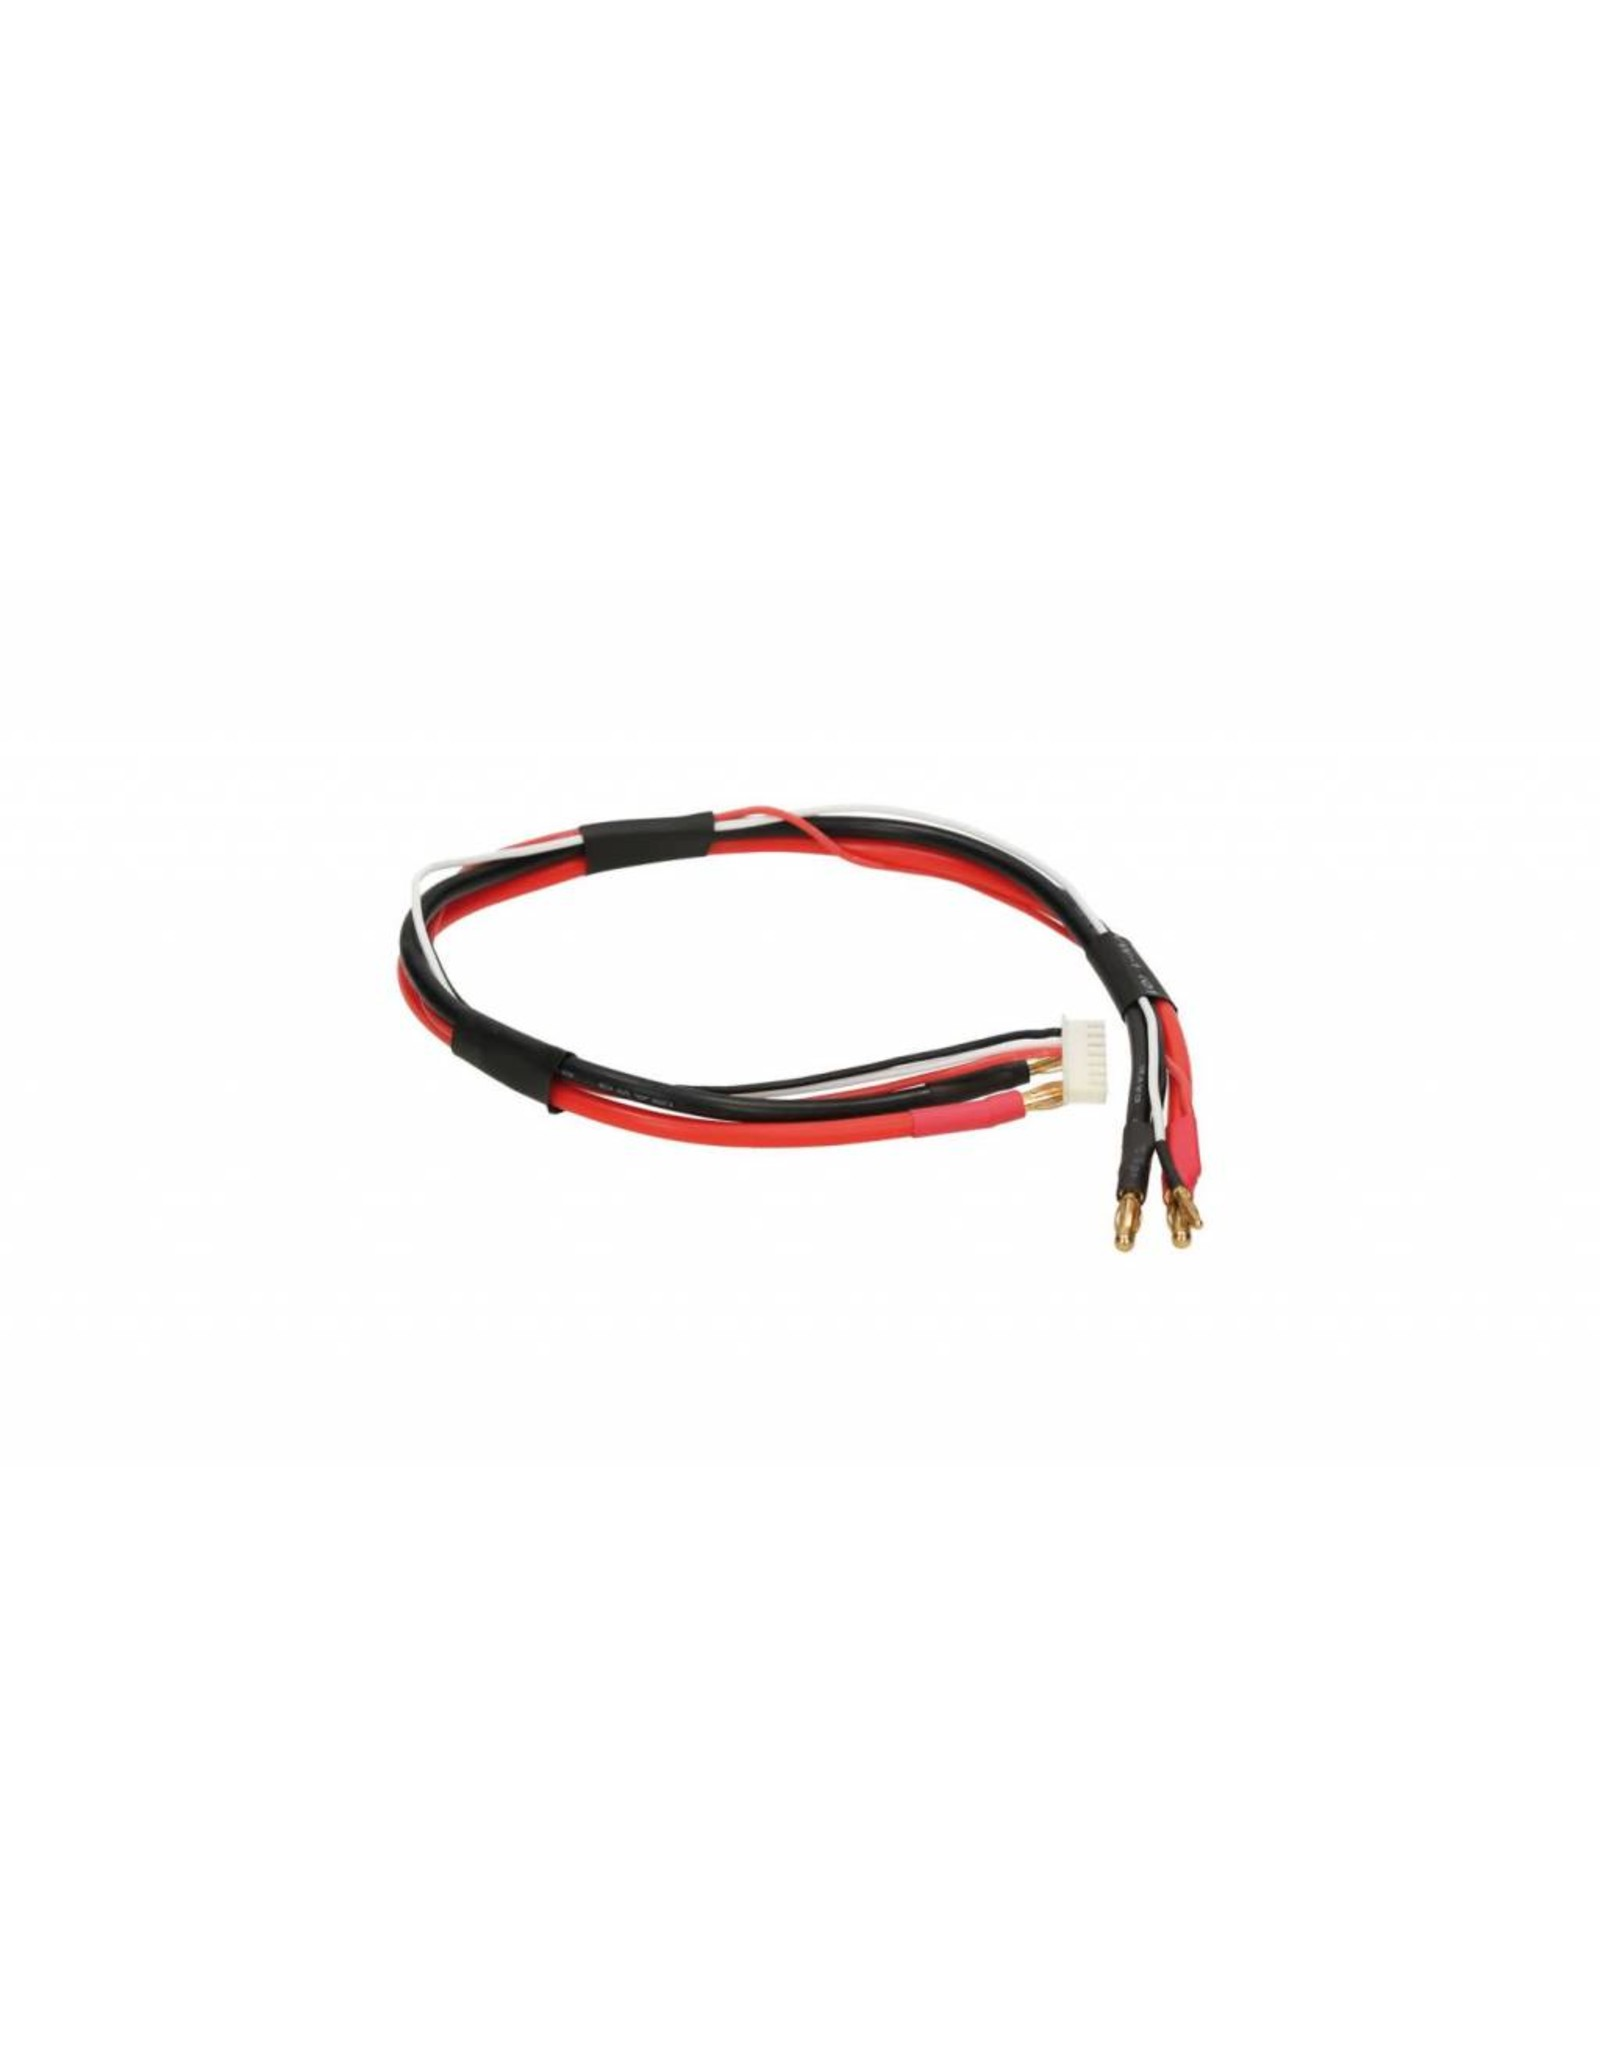 Orion 4mm 2S Pro Balance Charge Lead (45cm, 12AWG/20AWG)  (ORI40059)